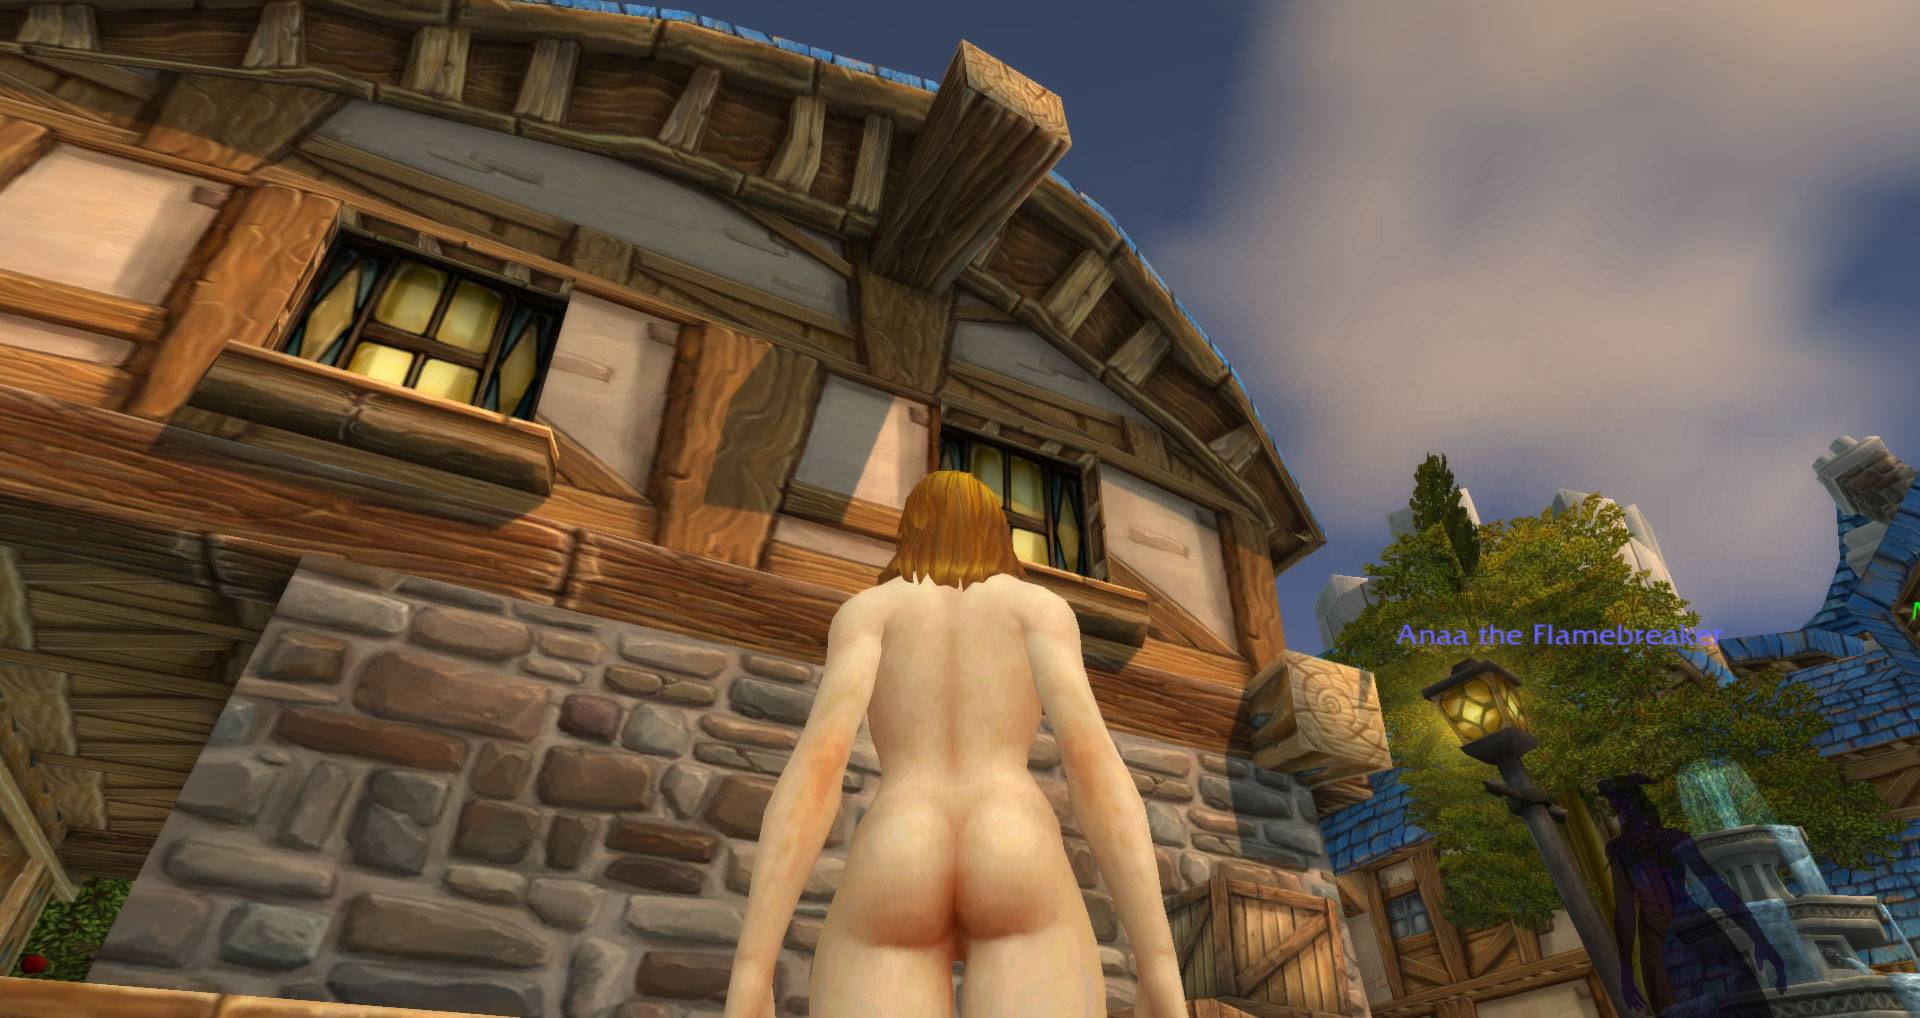 World of warcraft naked mod nackt movies